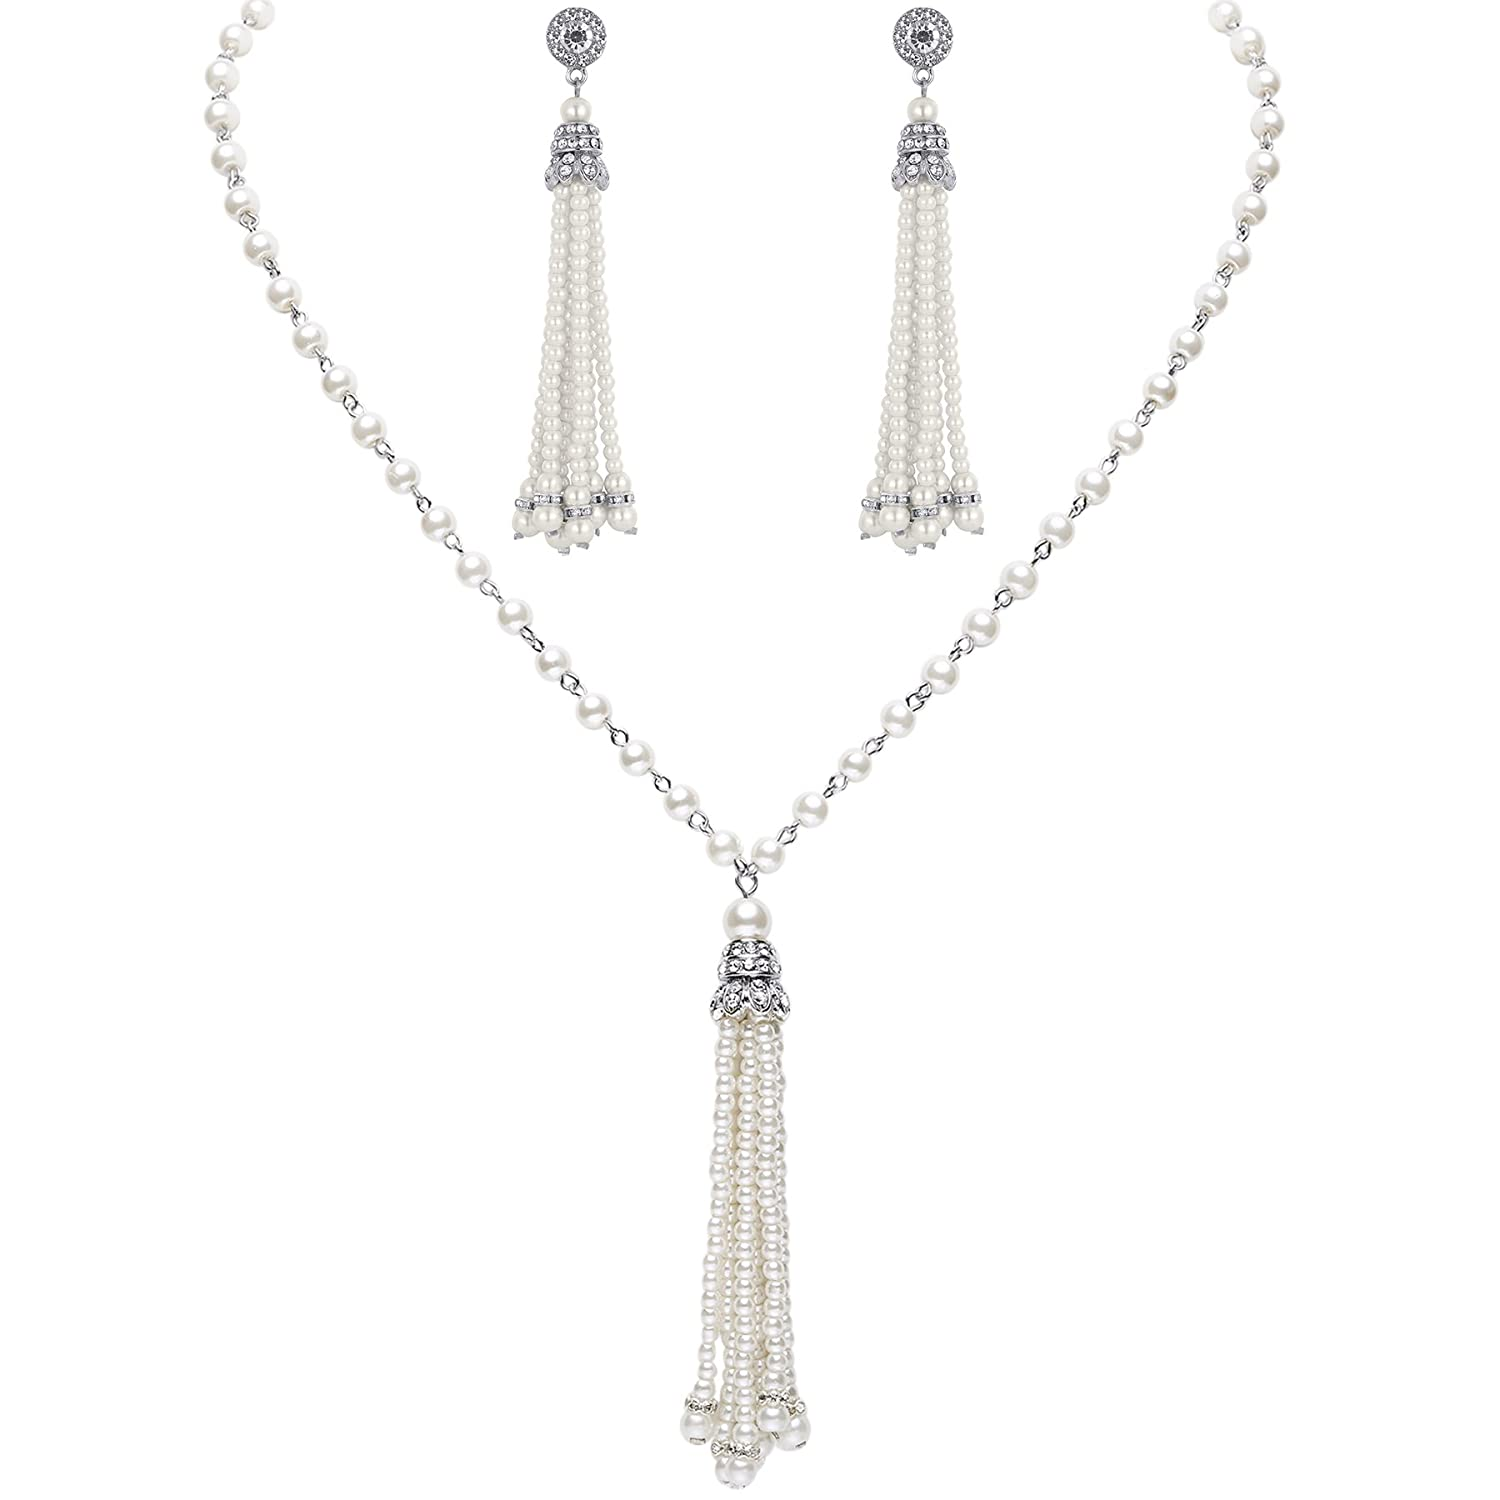 Vintage Style Jewelry, Retro Jewelry BABEYOND 1920s Bridal Pearl Tassel Necklace Earrings Set 20s Vintage Wedding Jewelry Set Gatsby Imitation Pearl Necklace Pearl Tassel Earrings Set $17.99 AT vintagedancer.com